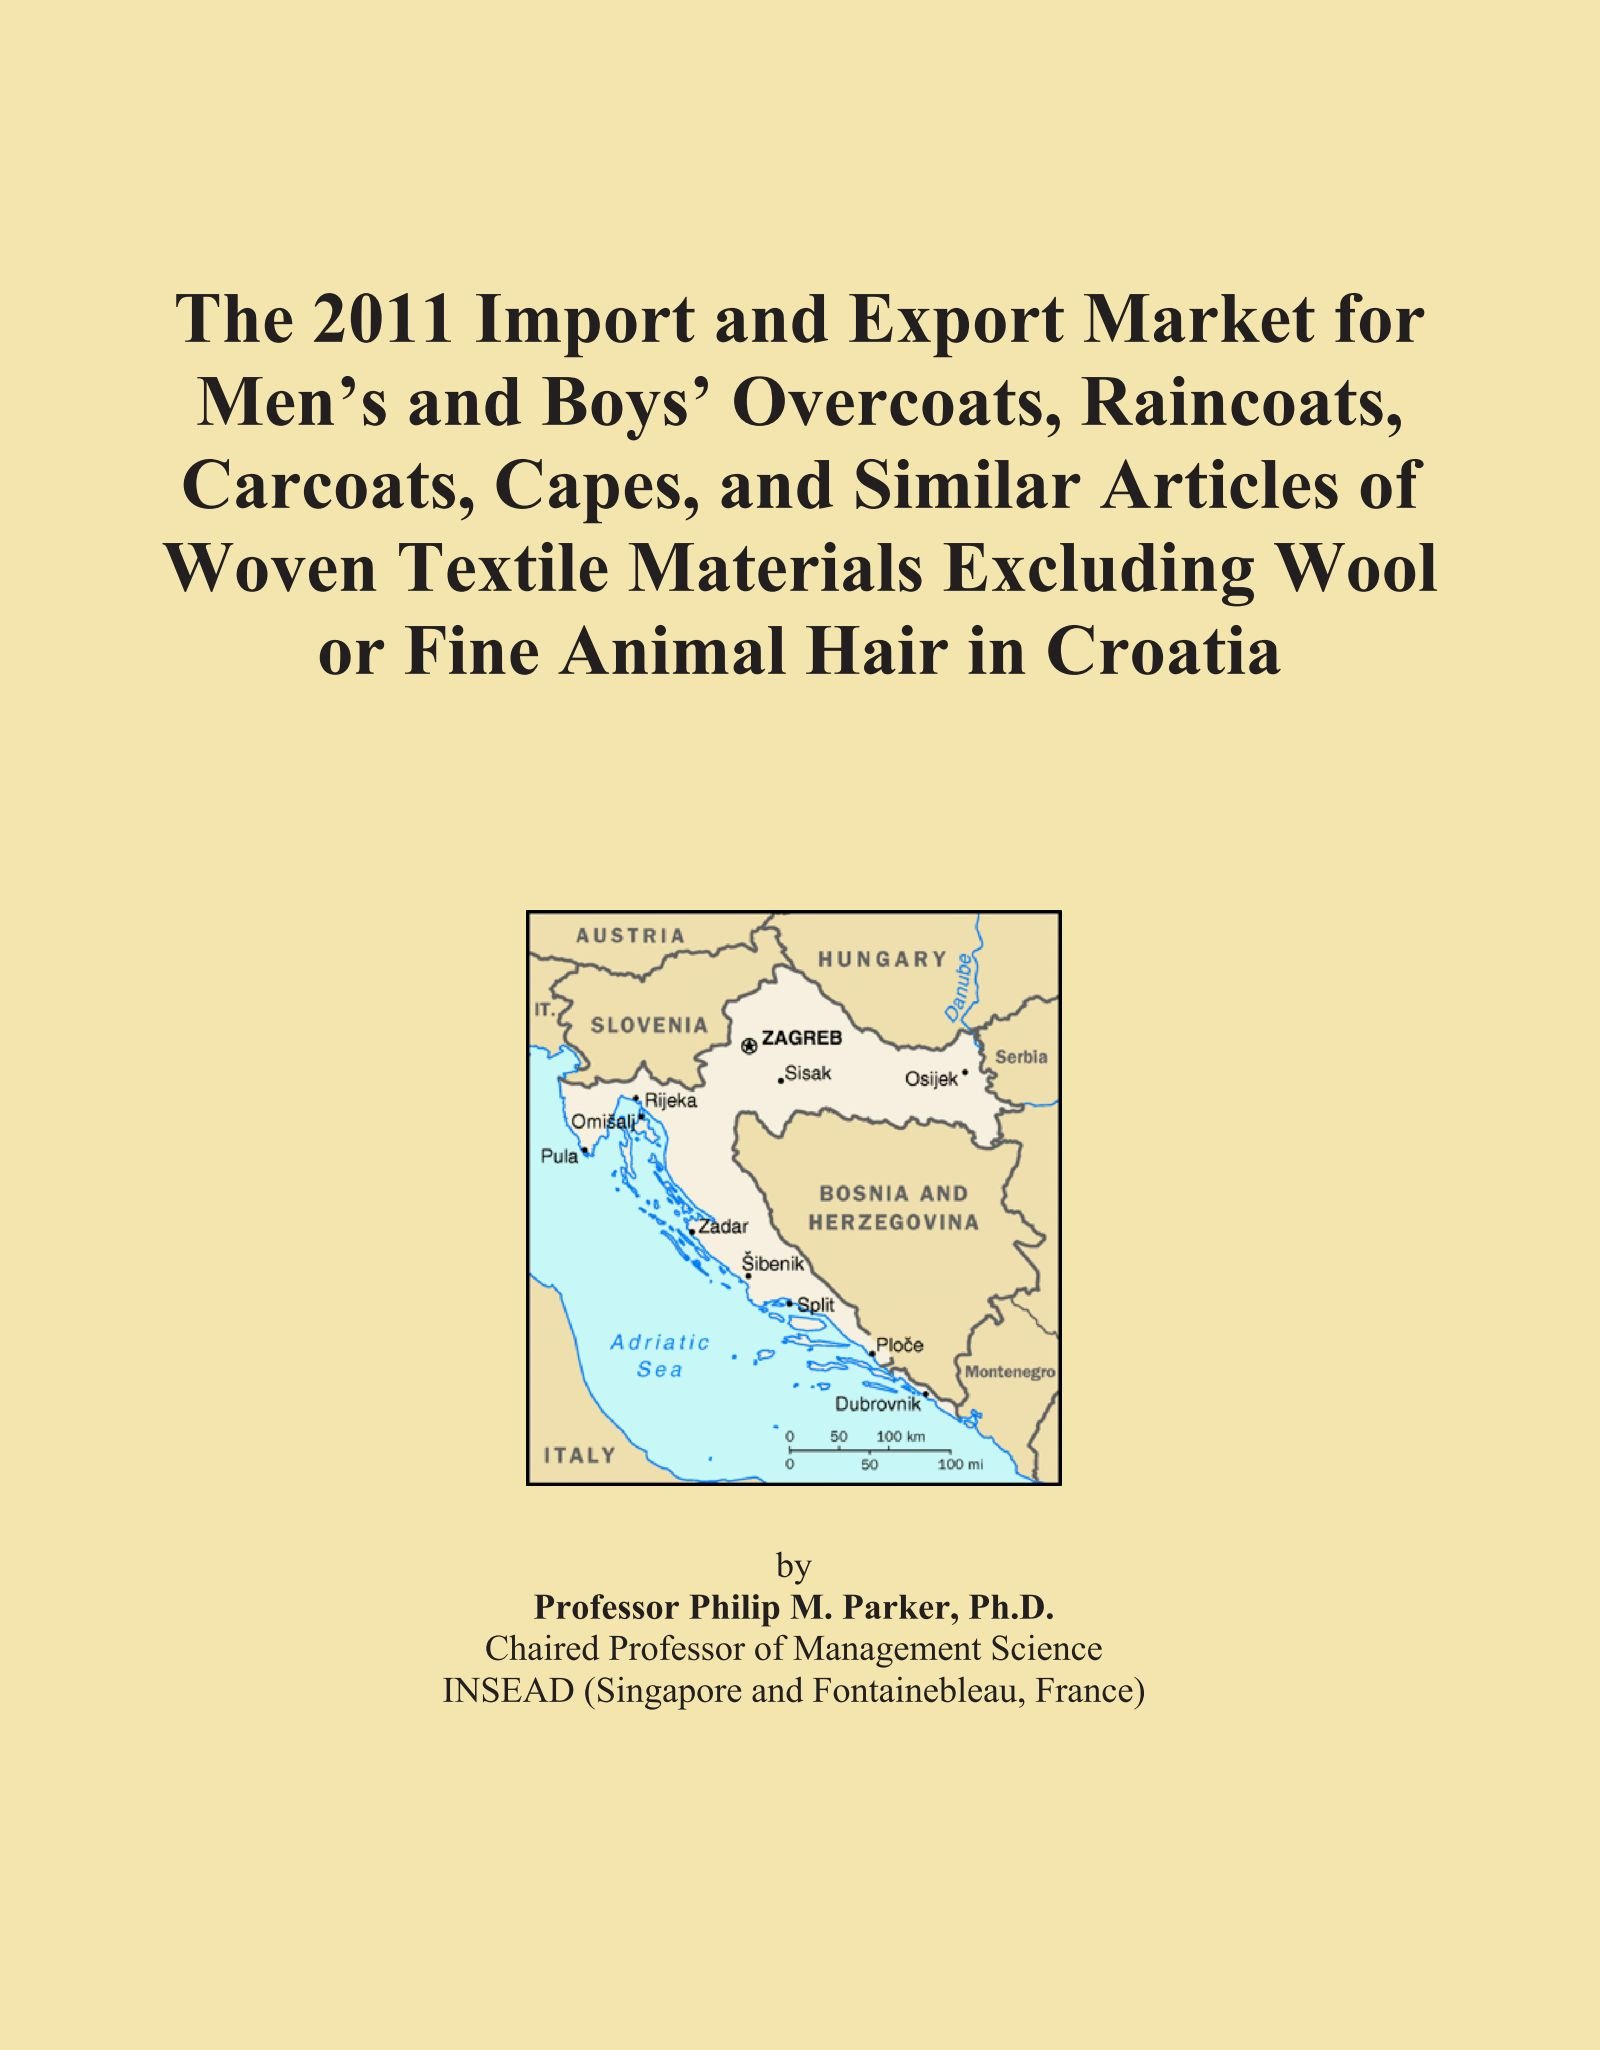 The 2011 Import and Export Market for Men's and Boys' Overcoats, Raincoats, Carcoats, Capes, and Similar Articles of Woven Textile Materials Excluding Wool or Fine Animal Hair in Croatia pdf